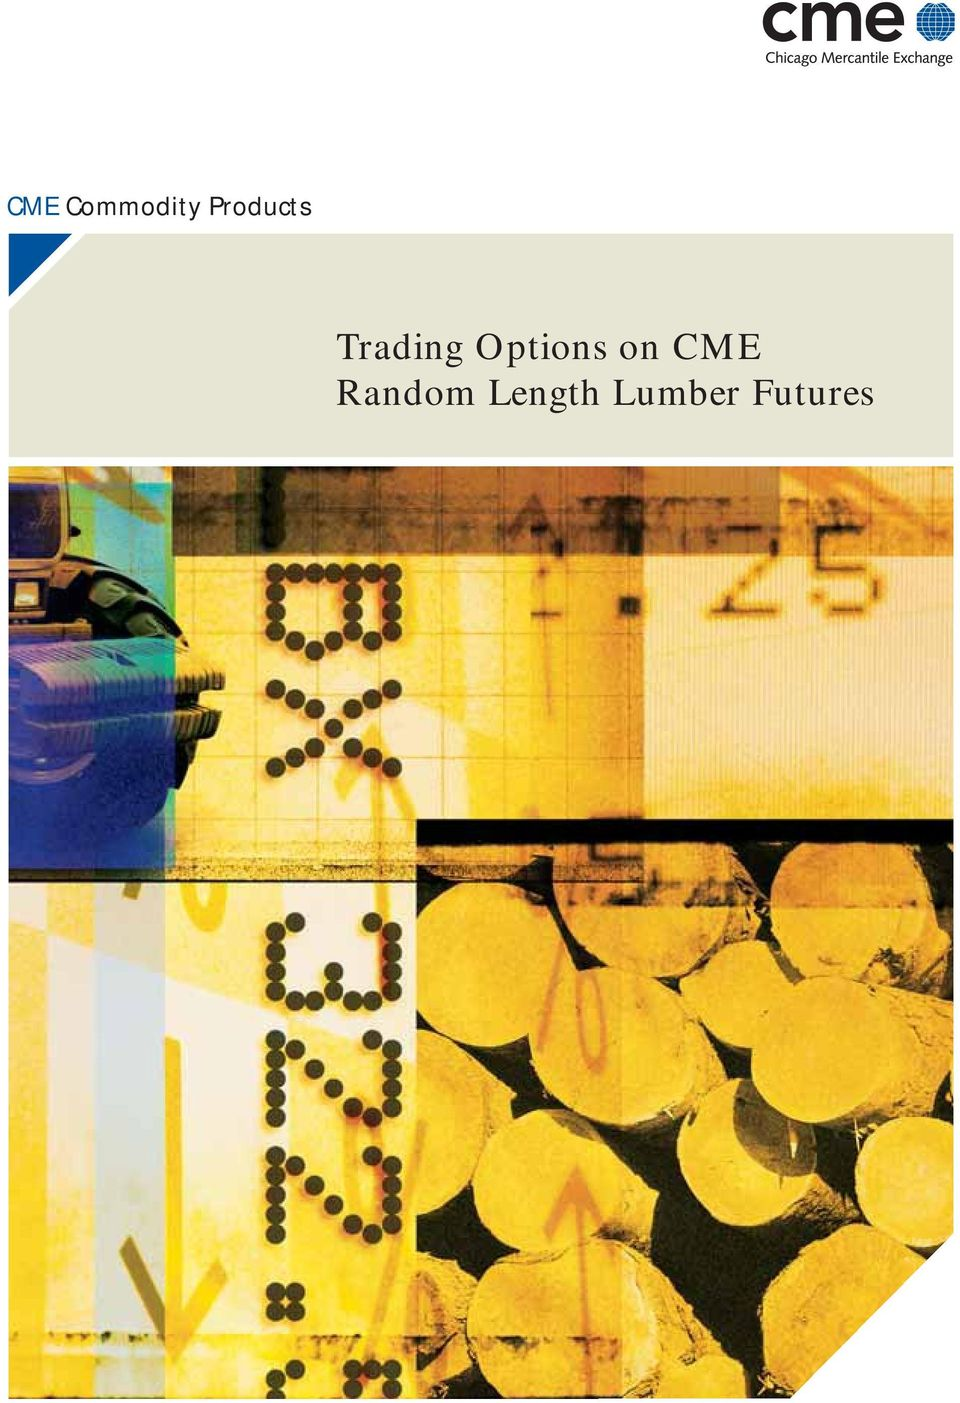 Options on CME